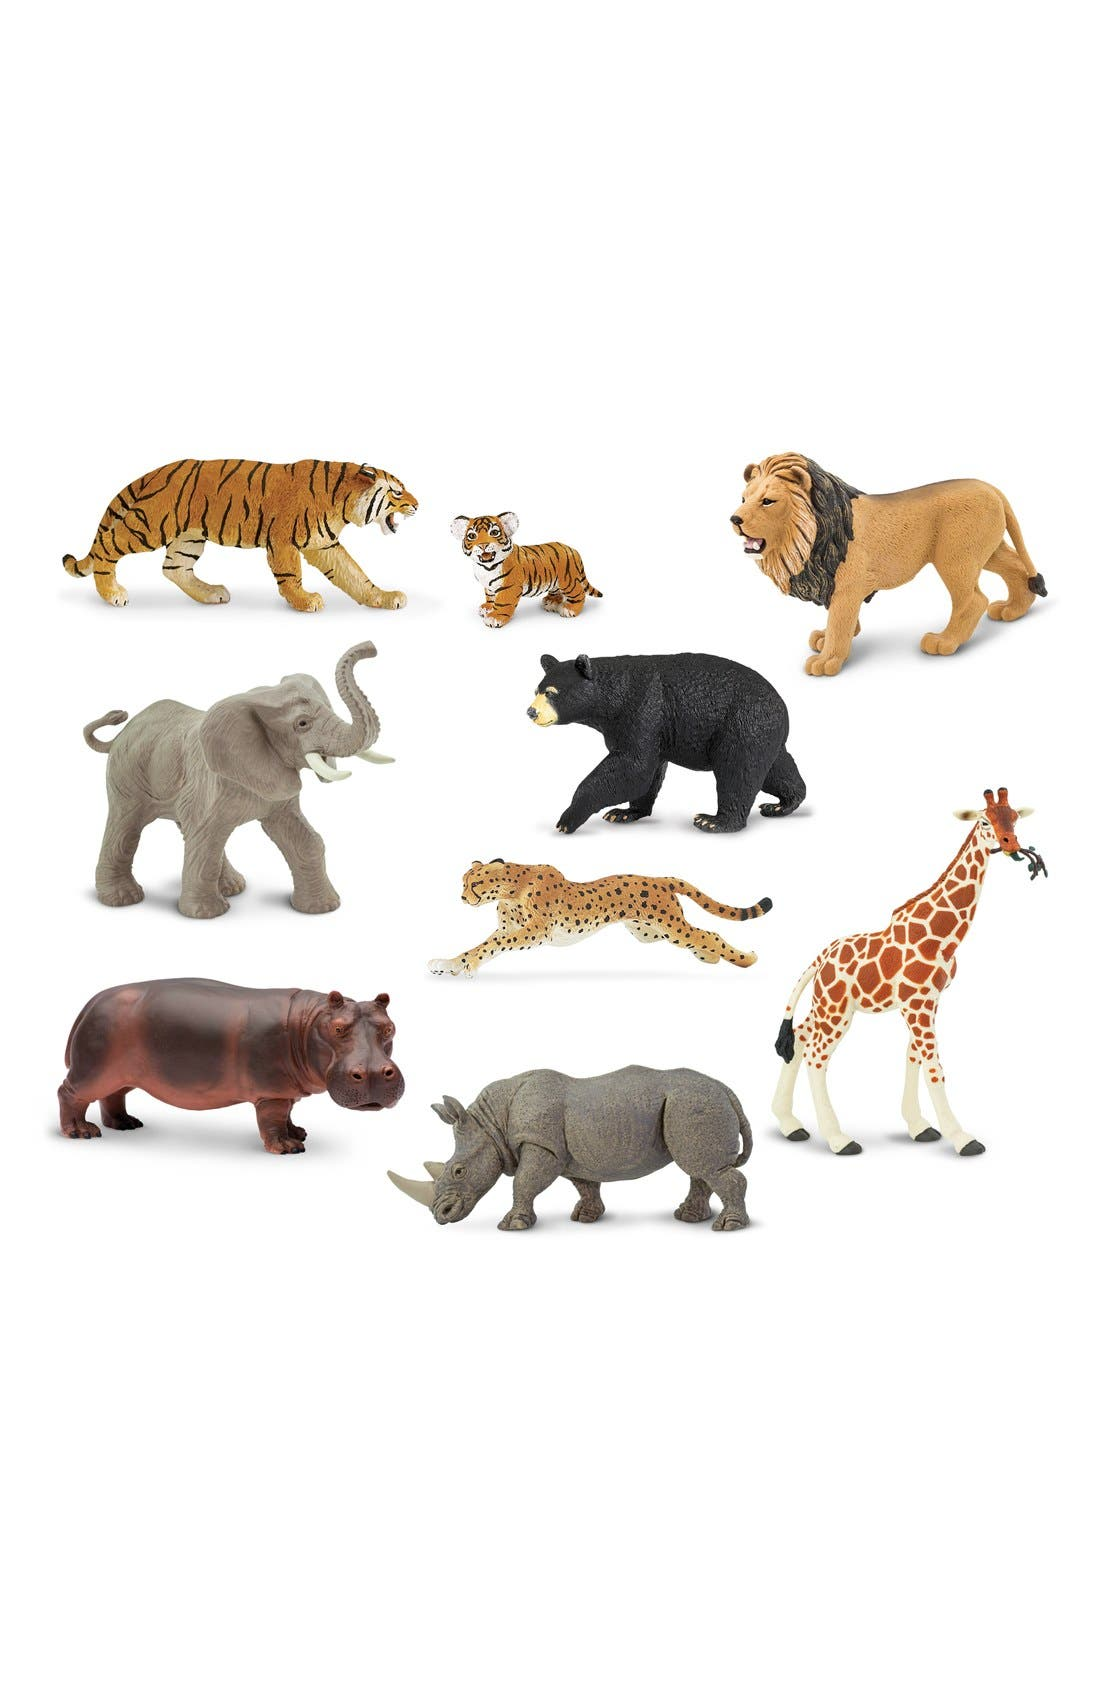 Alternate Image 1 Selected - Safari Ltd. Wildlife Figurines (Set of 9)